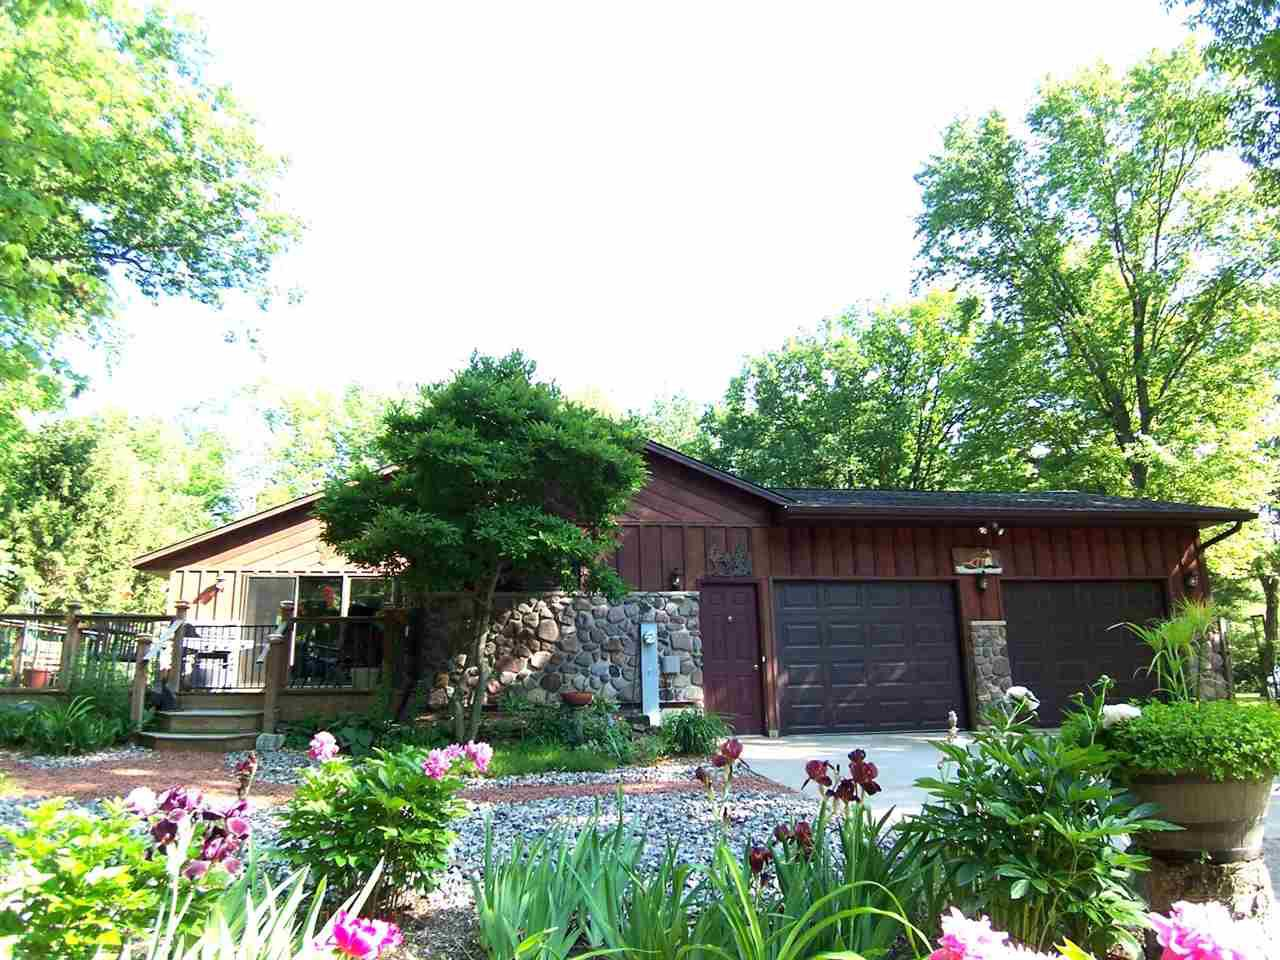 Rare find! 15 acres in desirable Suamico! Private setting, wooded with pond, stream, outbuilding & approx 1.5 acres fenced for your pets! Updated wk-out ranch w/2912 sqft finished, 4 beds, 2.5 baths. Kit w/newer beautiful mpl cabinets & stainless steel appliances. Dinette w/patio dr to backyard. Great rm w/brick fireplace & patio dr to deck. Master Ste w/priv full bath w/tub. Finished basement w/family rm w/bar, stone fireplace & patio dr, 4th bed, 1/2 bath. Beautifully landscaped with waterfall. 24x40 outbuilding w/horse stalls, 2 sheds, garden & more! Updates & features too many to mention!